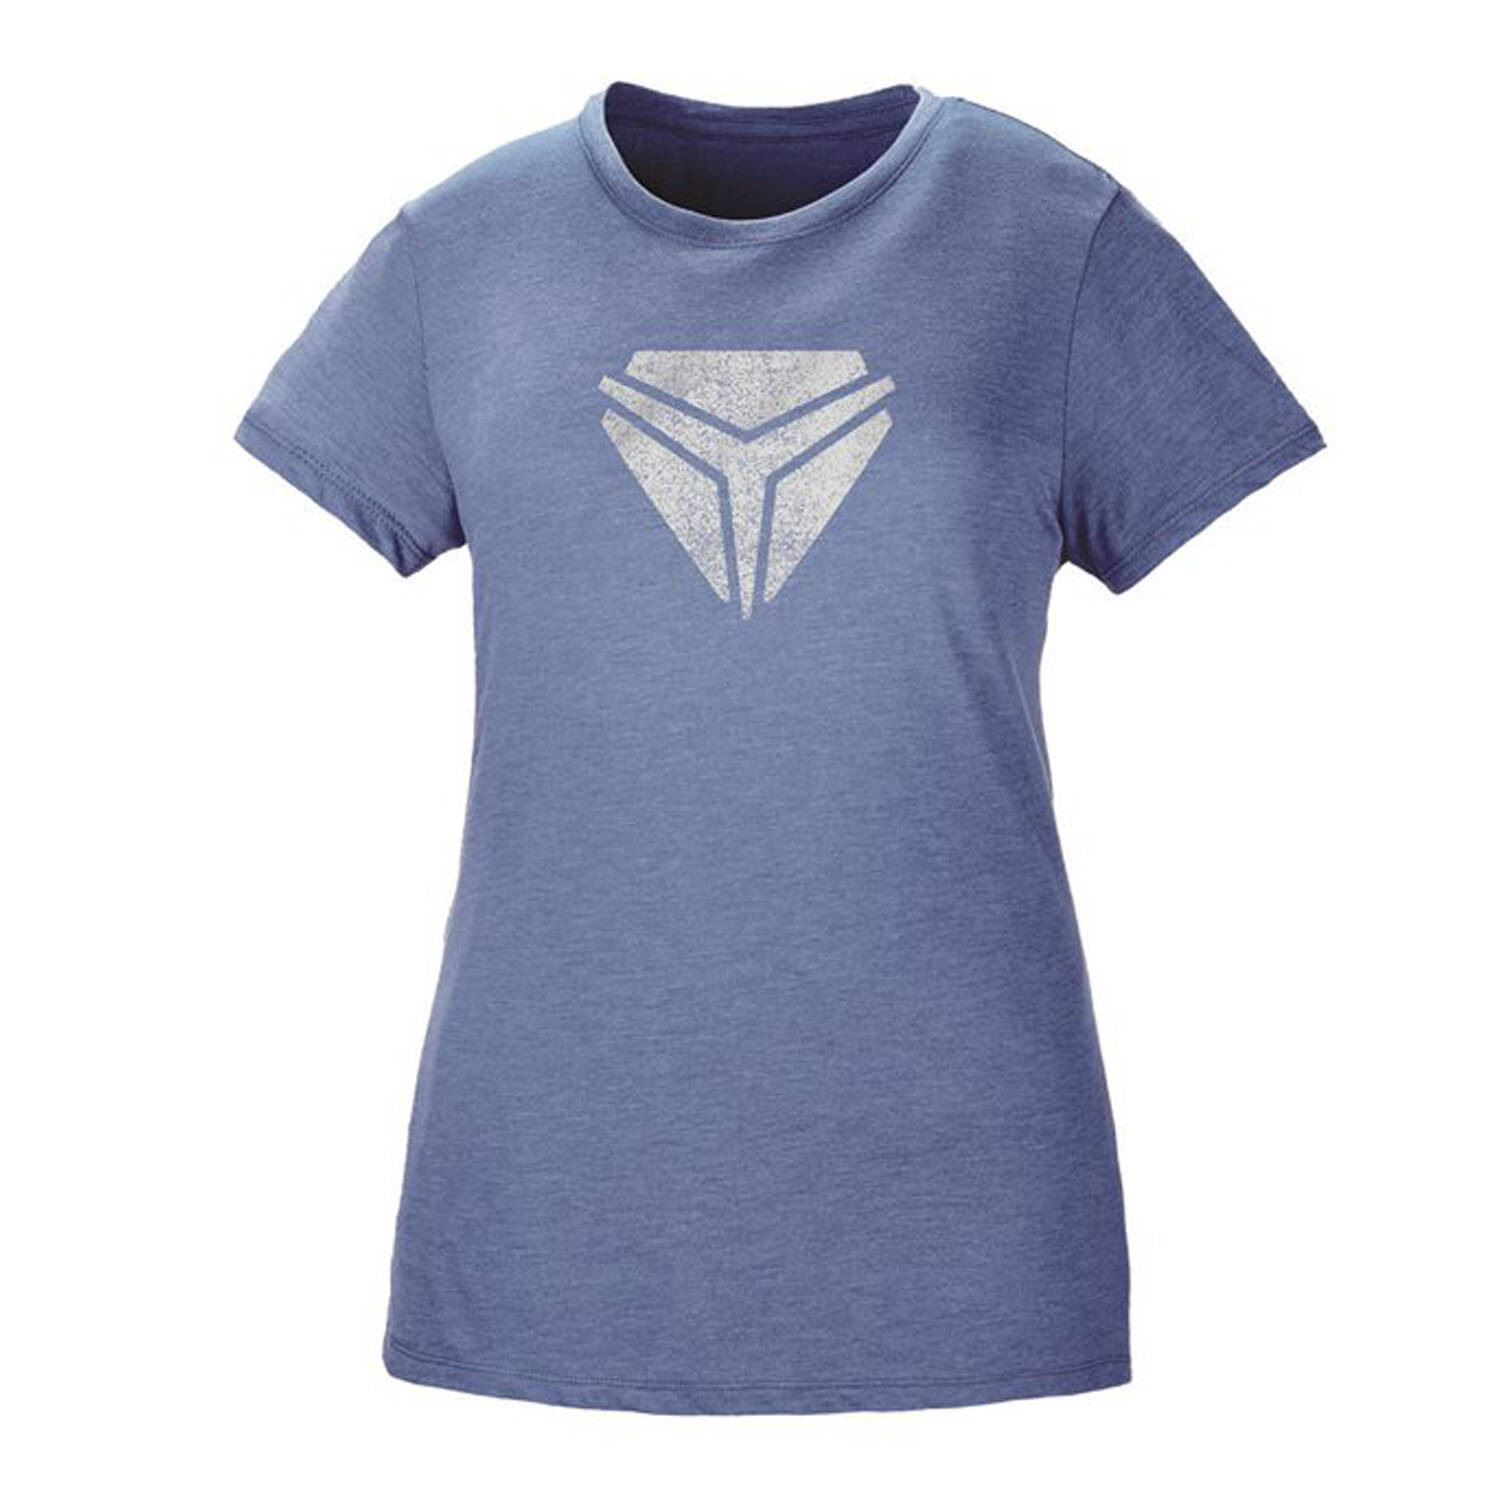 Women's Vintage Shield Tee - Blue/White